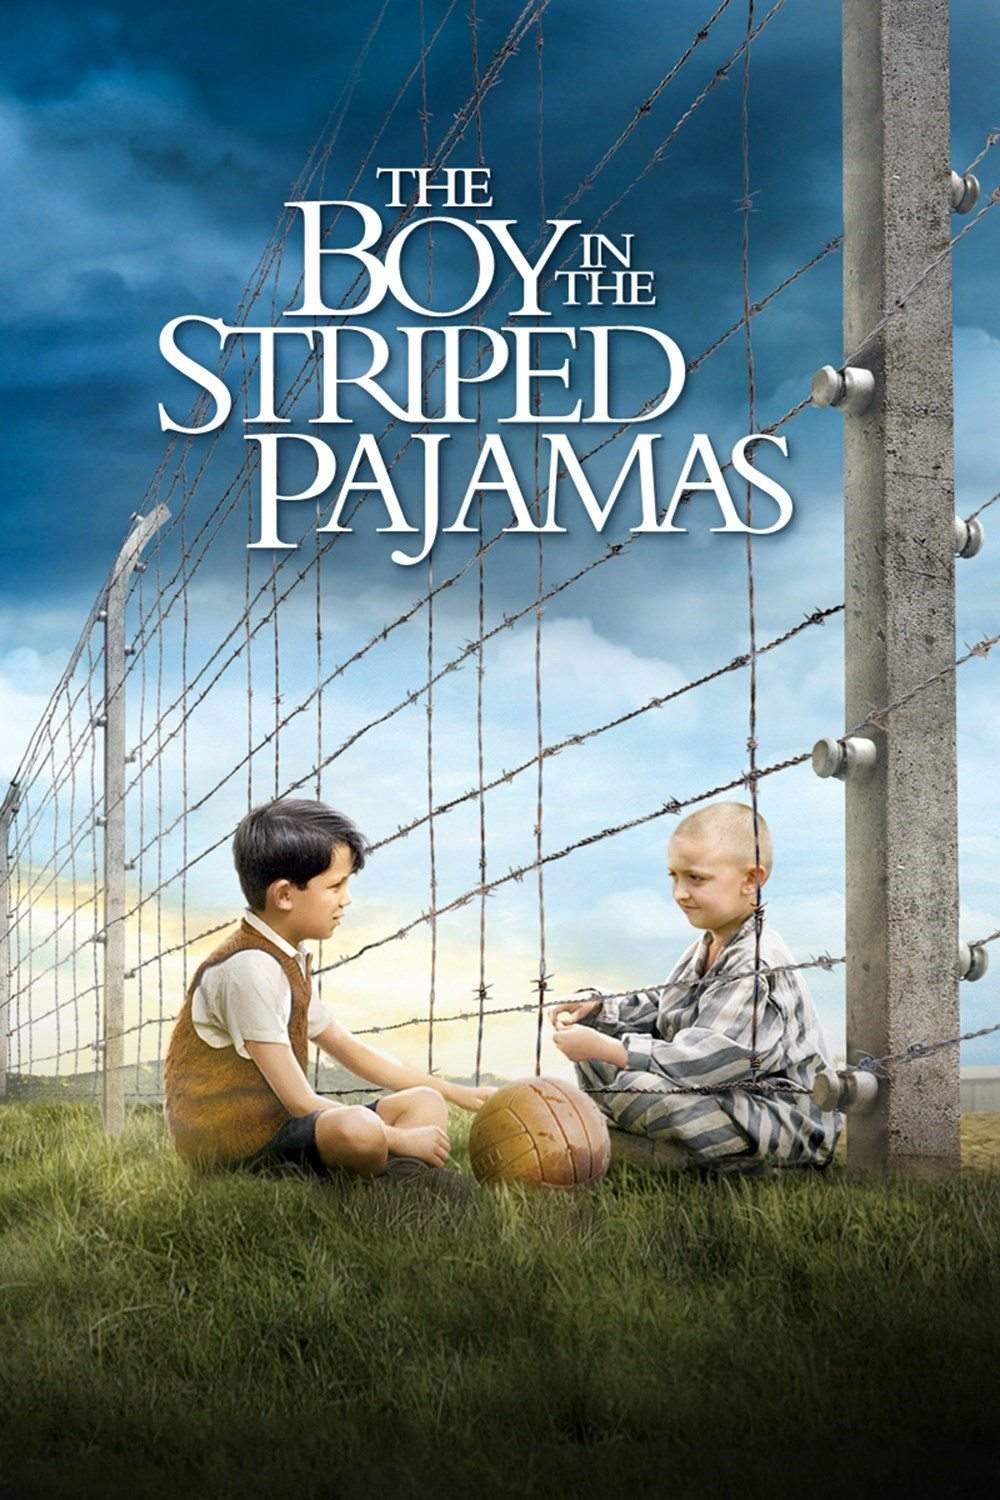 the-boy-in-the-striped-pyjamas-the-boy-in-the-striped-pajamas-28395